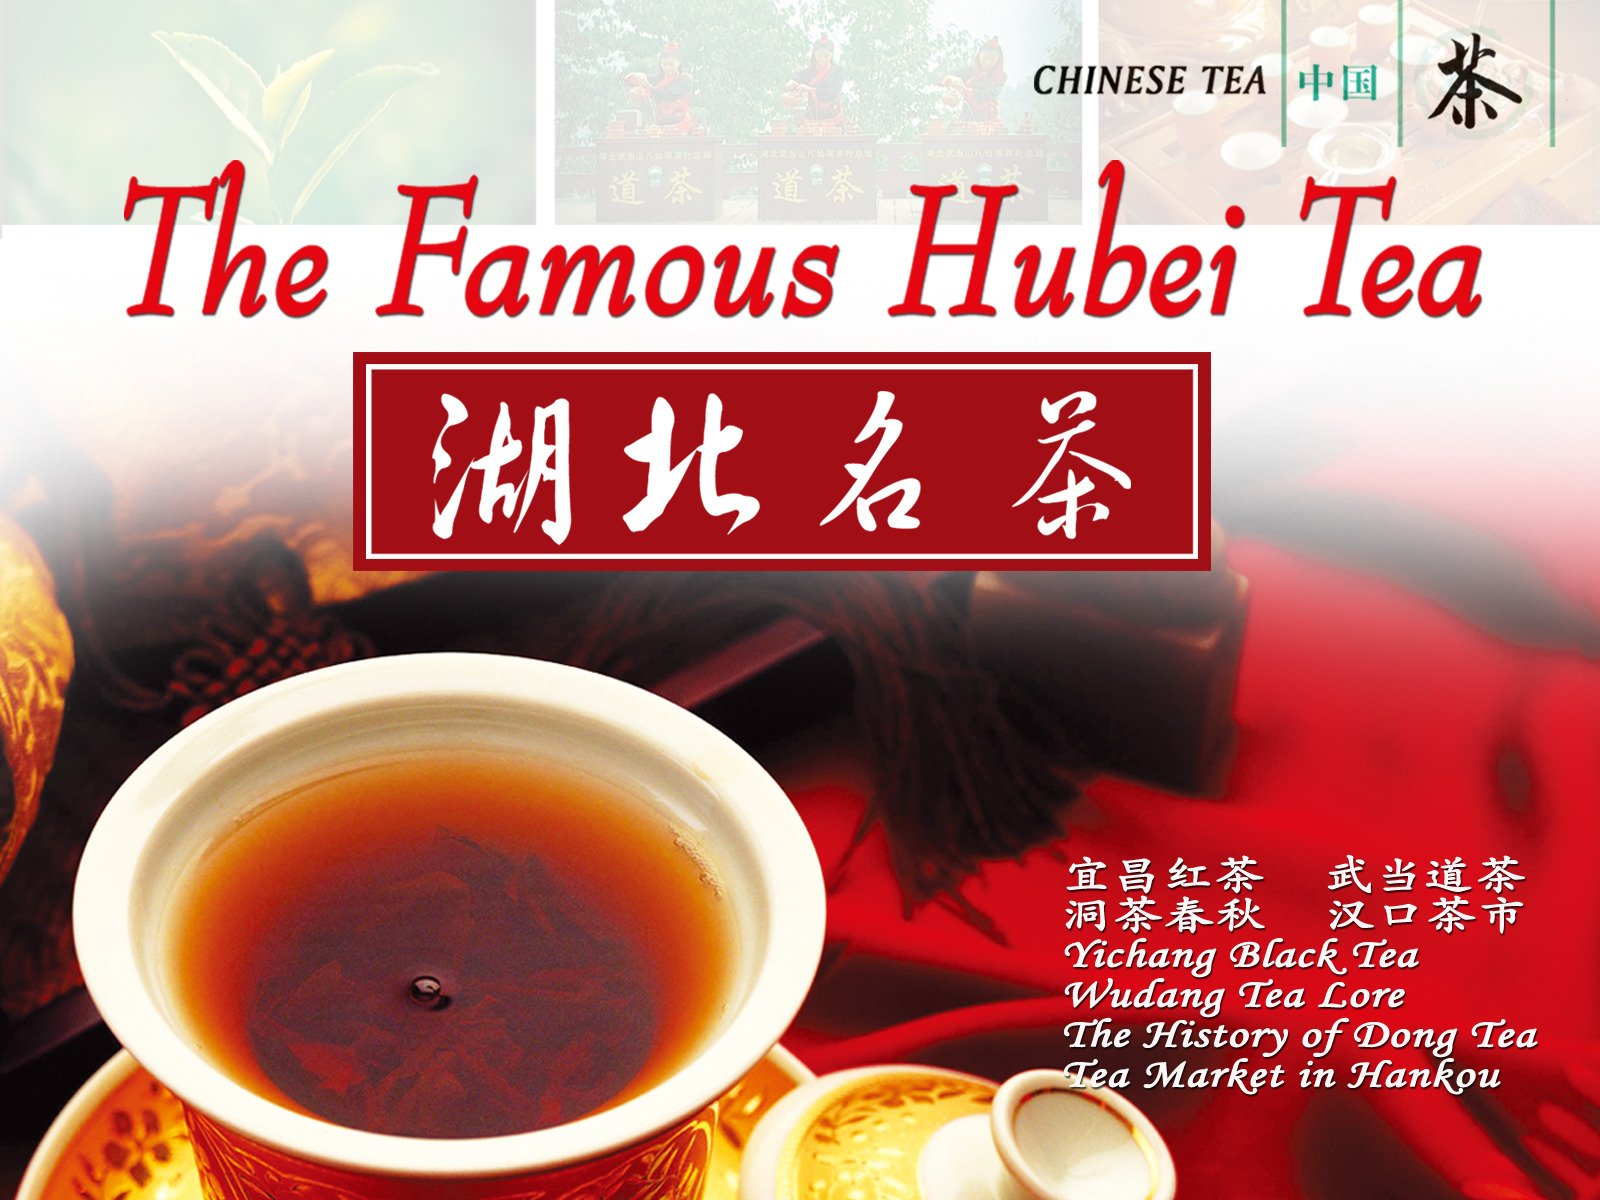 The Famous Hubei Tea - Season 1